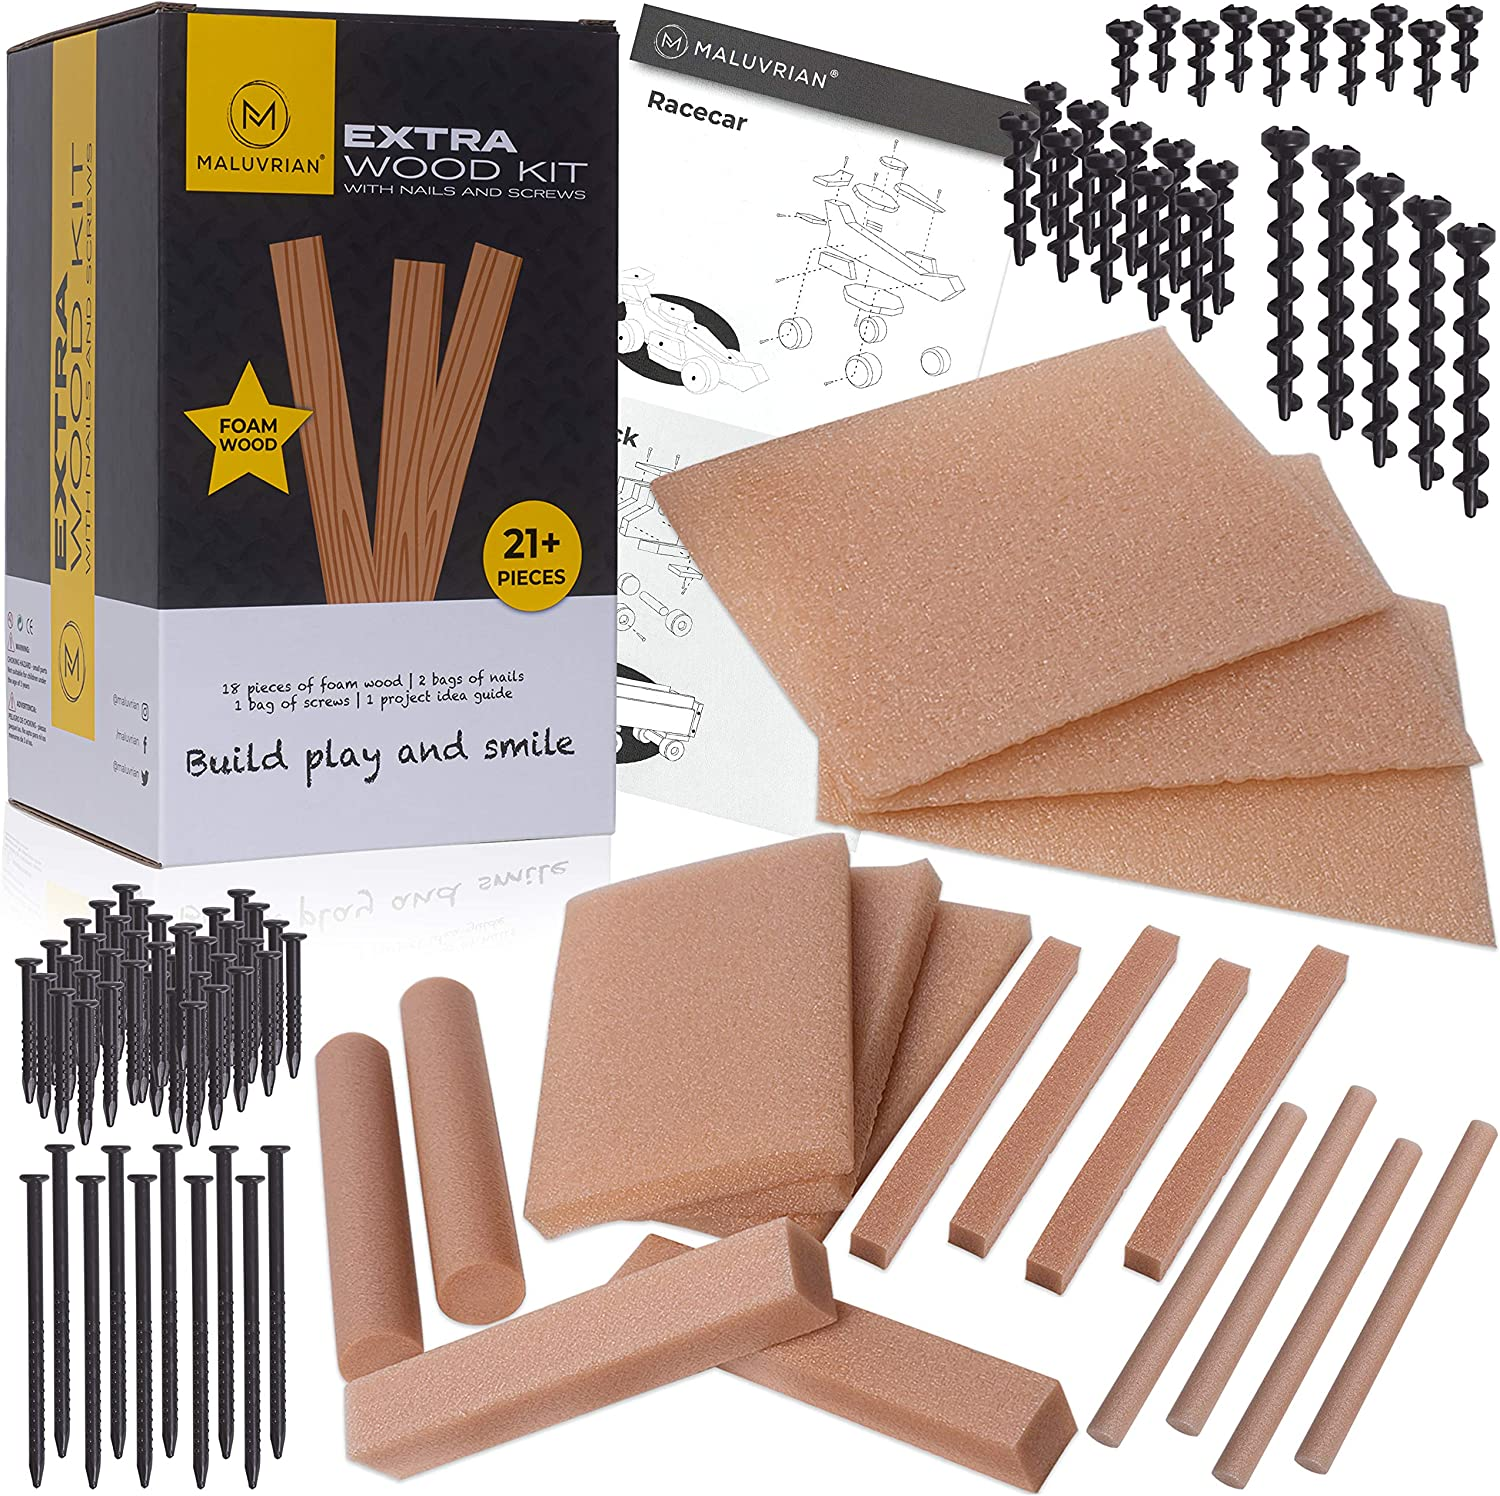 MALUVRIAN Arts and Craft Kit for Kids Extra Foam Wood Kit with 18 Pieces of Craft Foam Wood Screws and Nails Kids Tool Set Building Toys Educational Learning Toys STEAM STEM Toys for Boys and Girls